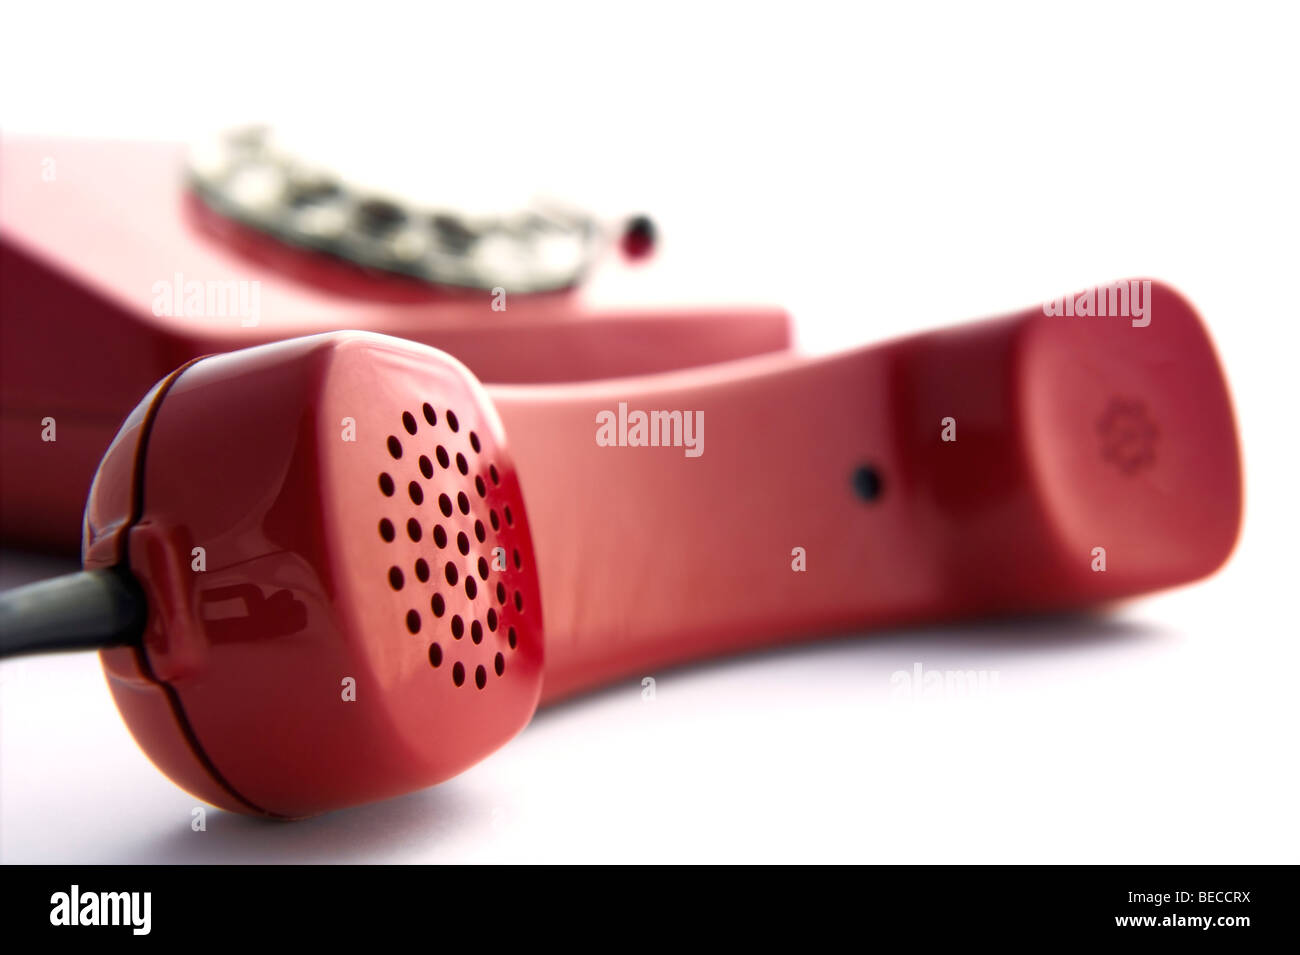 Detail of a red rotary telephone - Stock Image